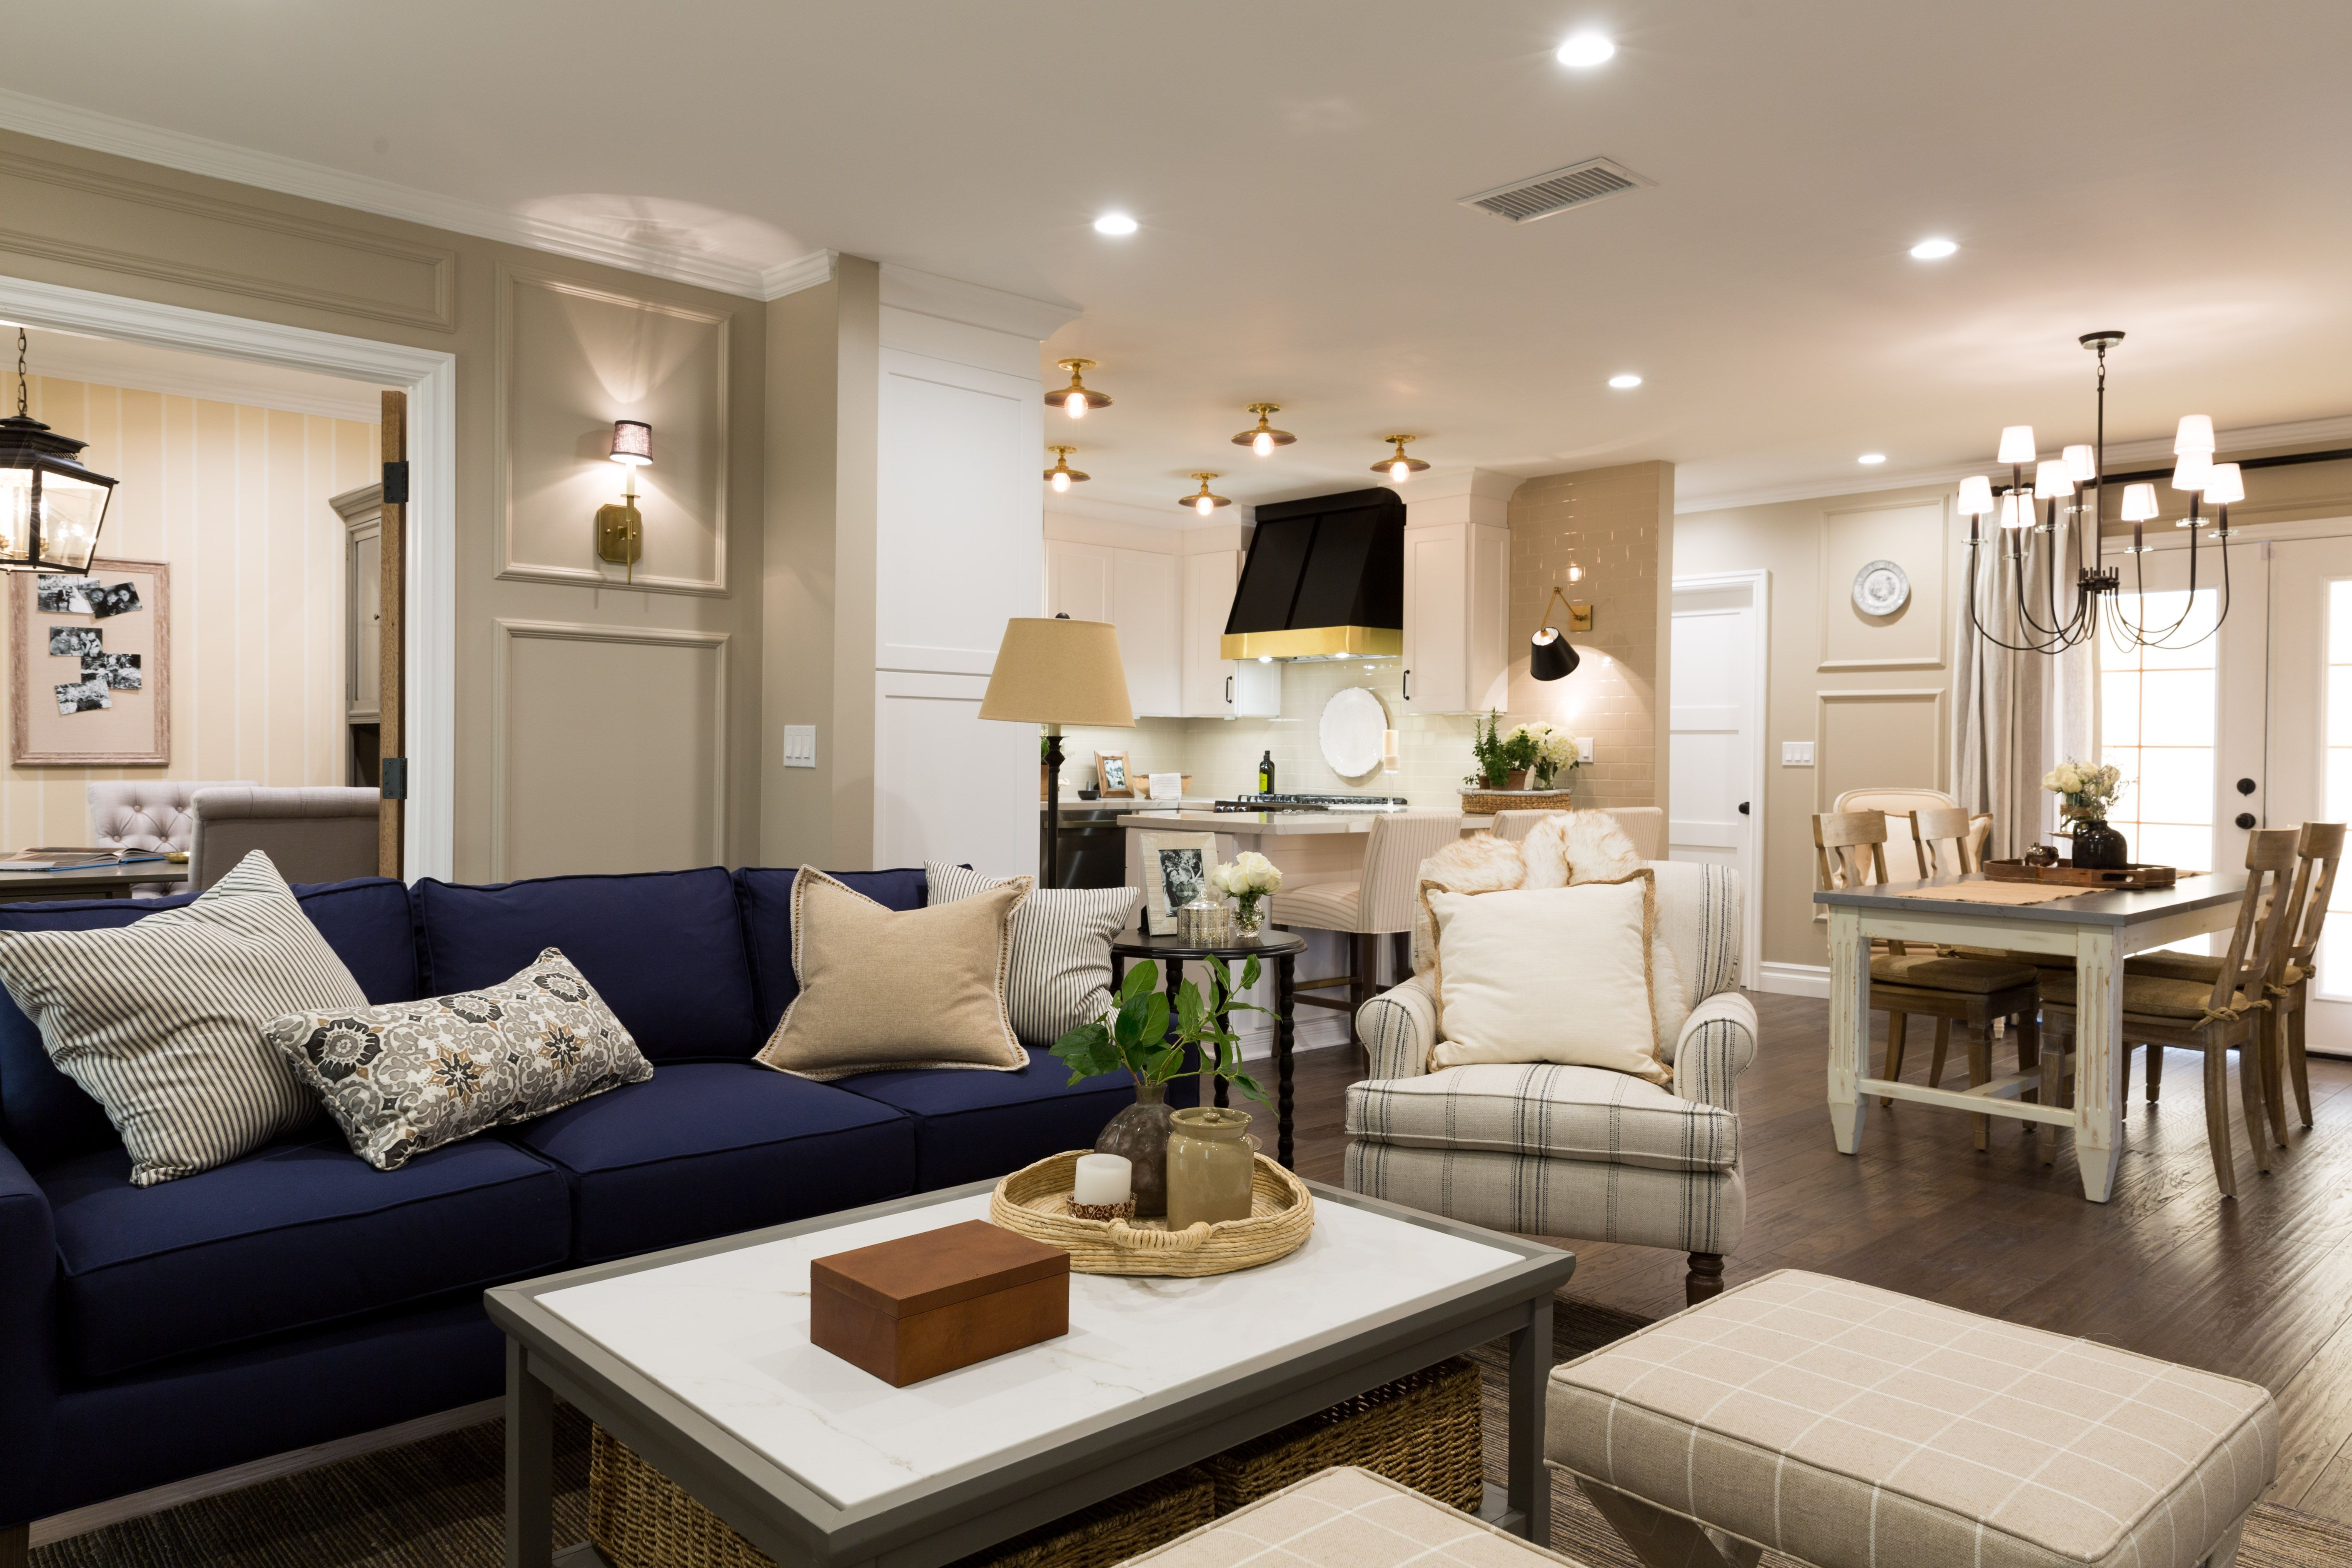 Classic Home Decor Themes That Are Always In Style With Images